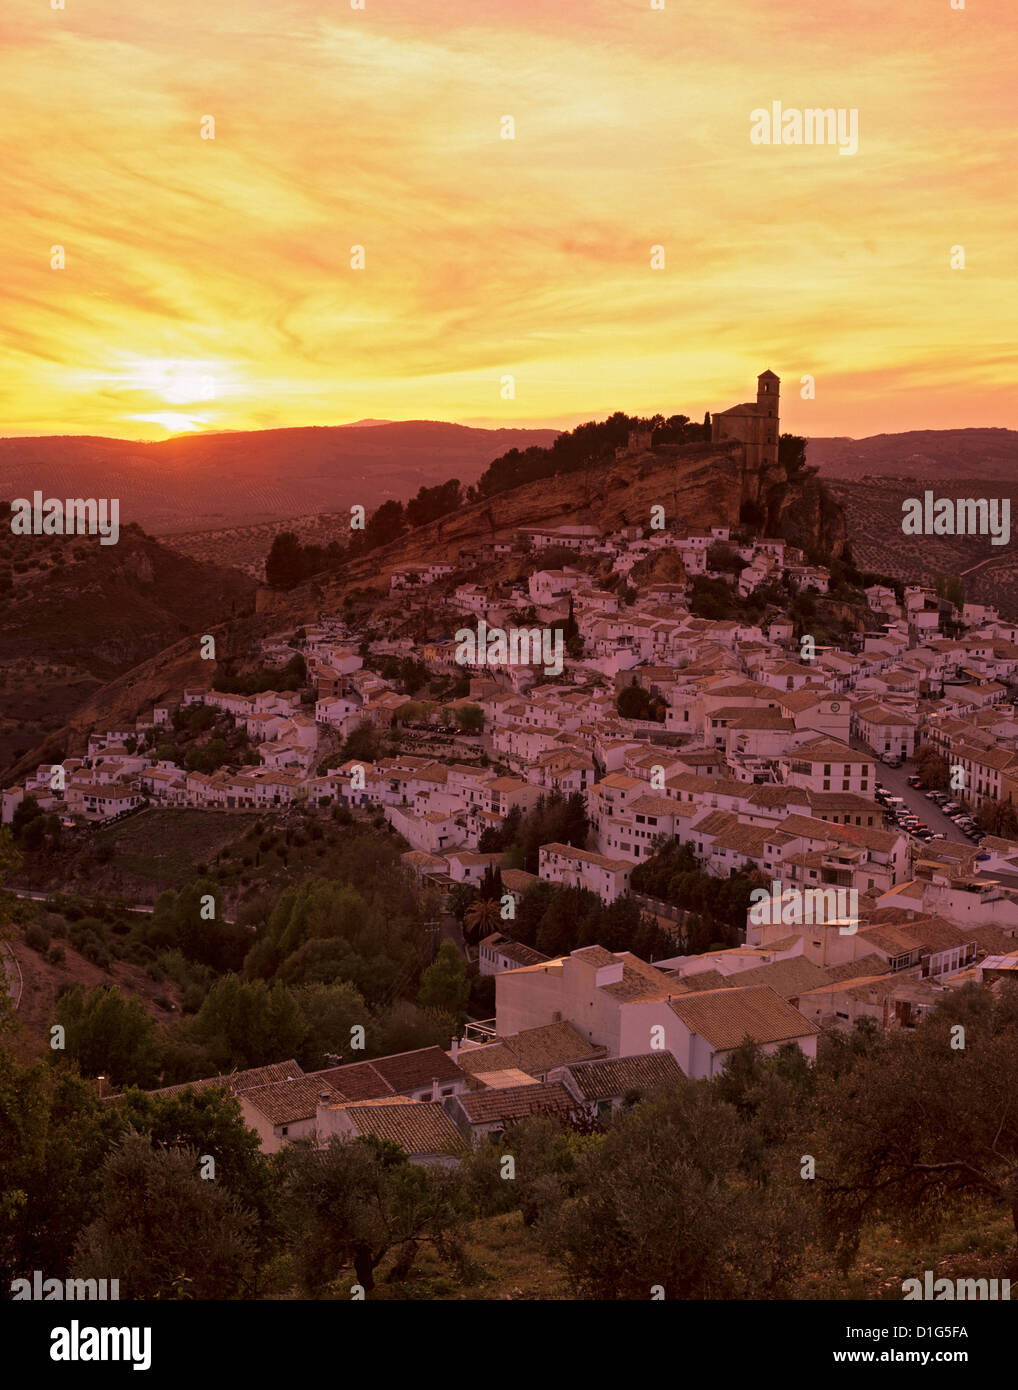 Sunset over white village, Montefrio, Andalucia, Spain, Europe - Stock Image